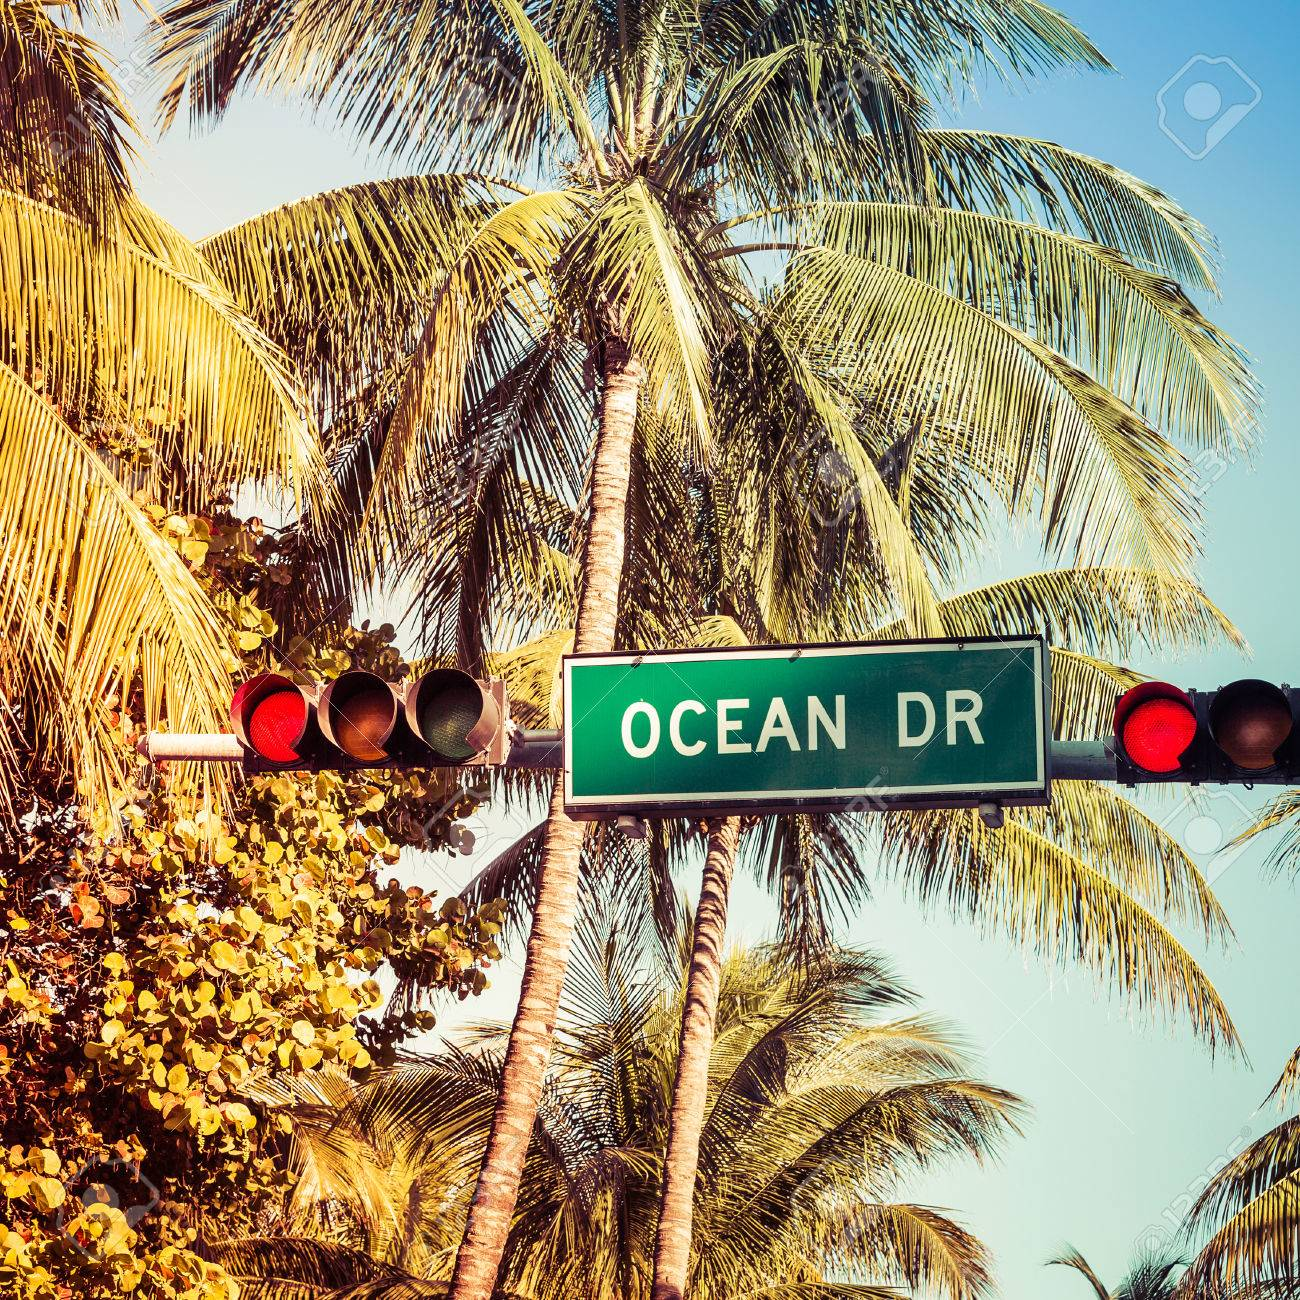 coconut palm trees and ocean drive street sign in miami beach